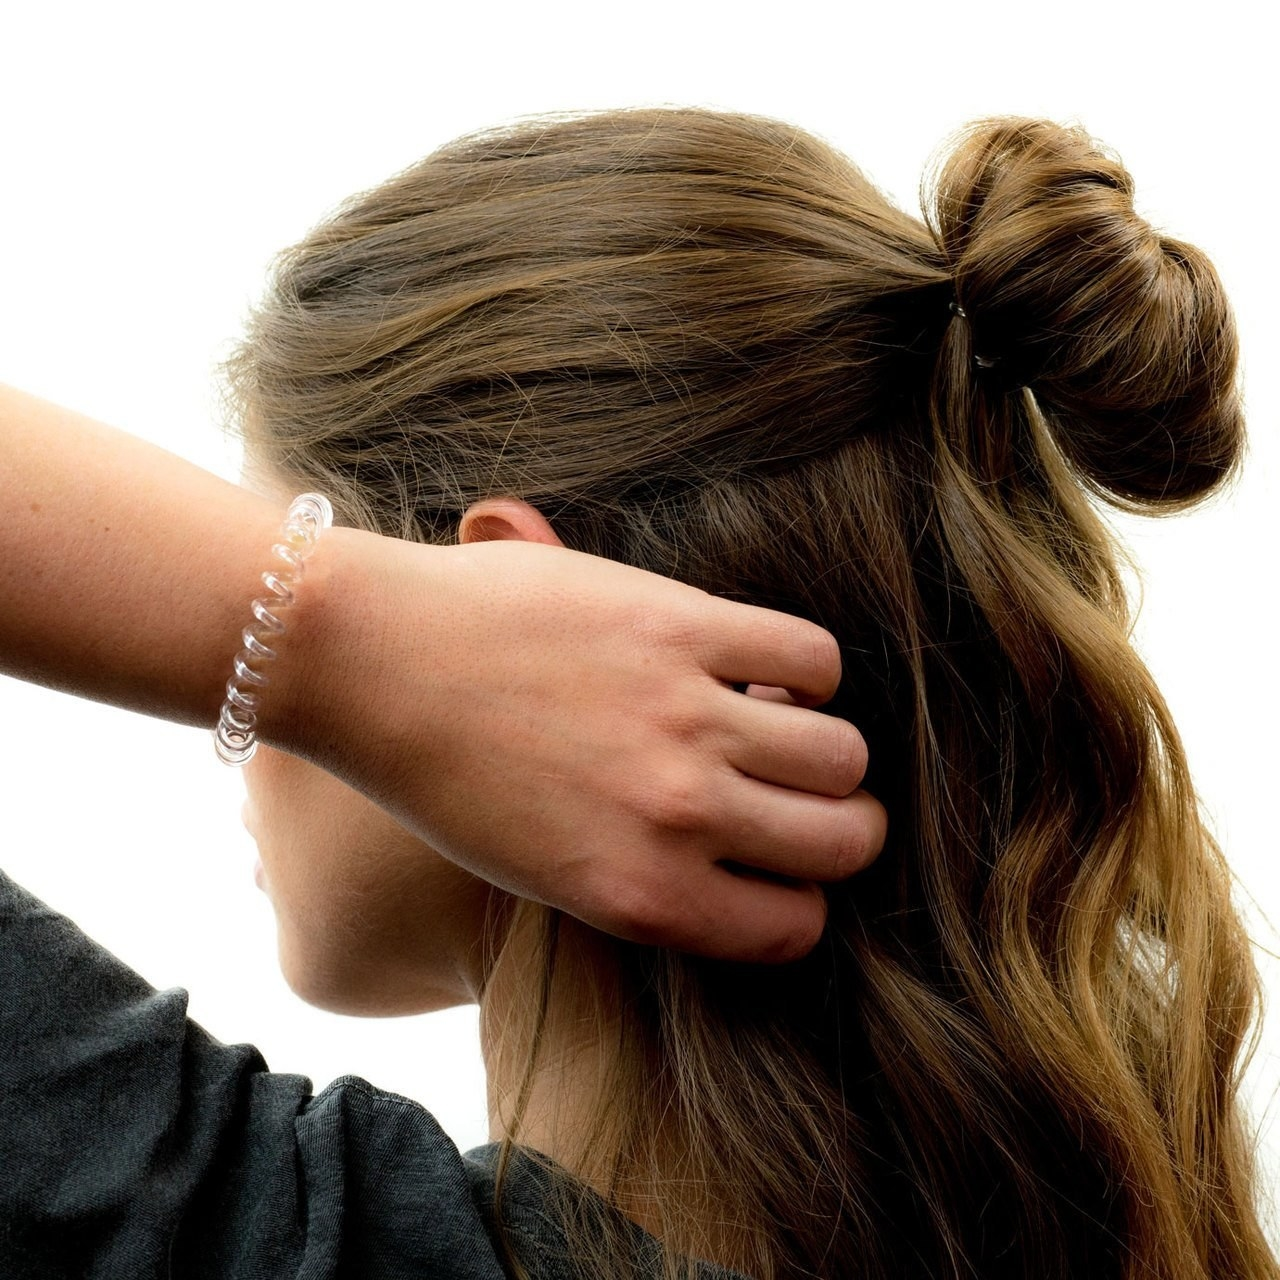 Model with with her hair half up and a clear spiral hair tie around her wrist